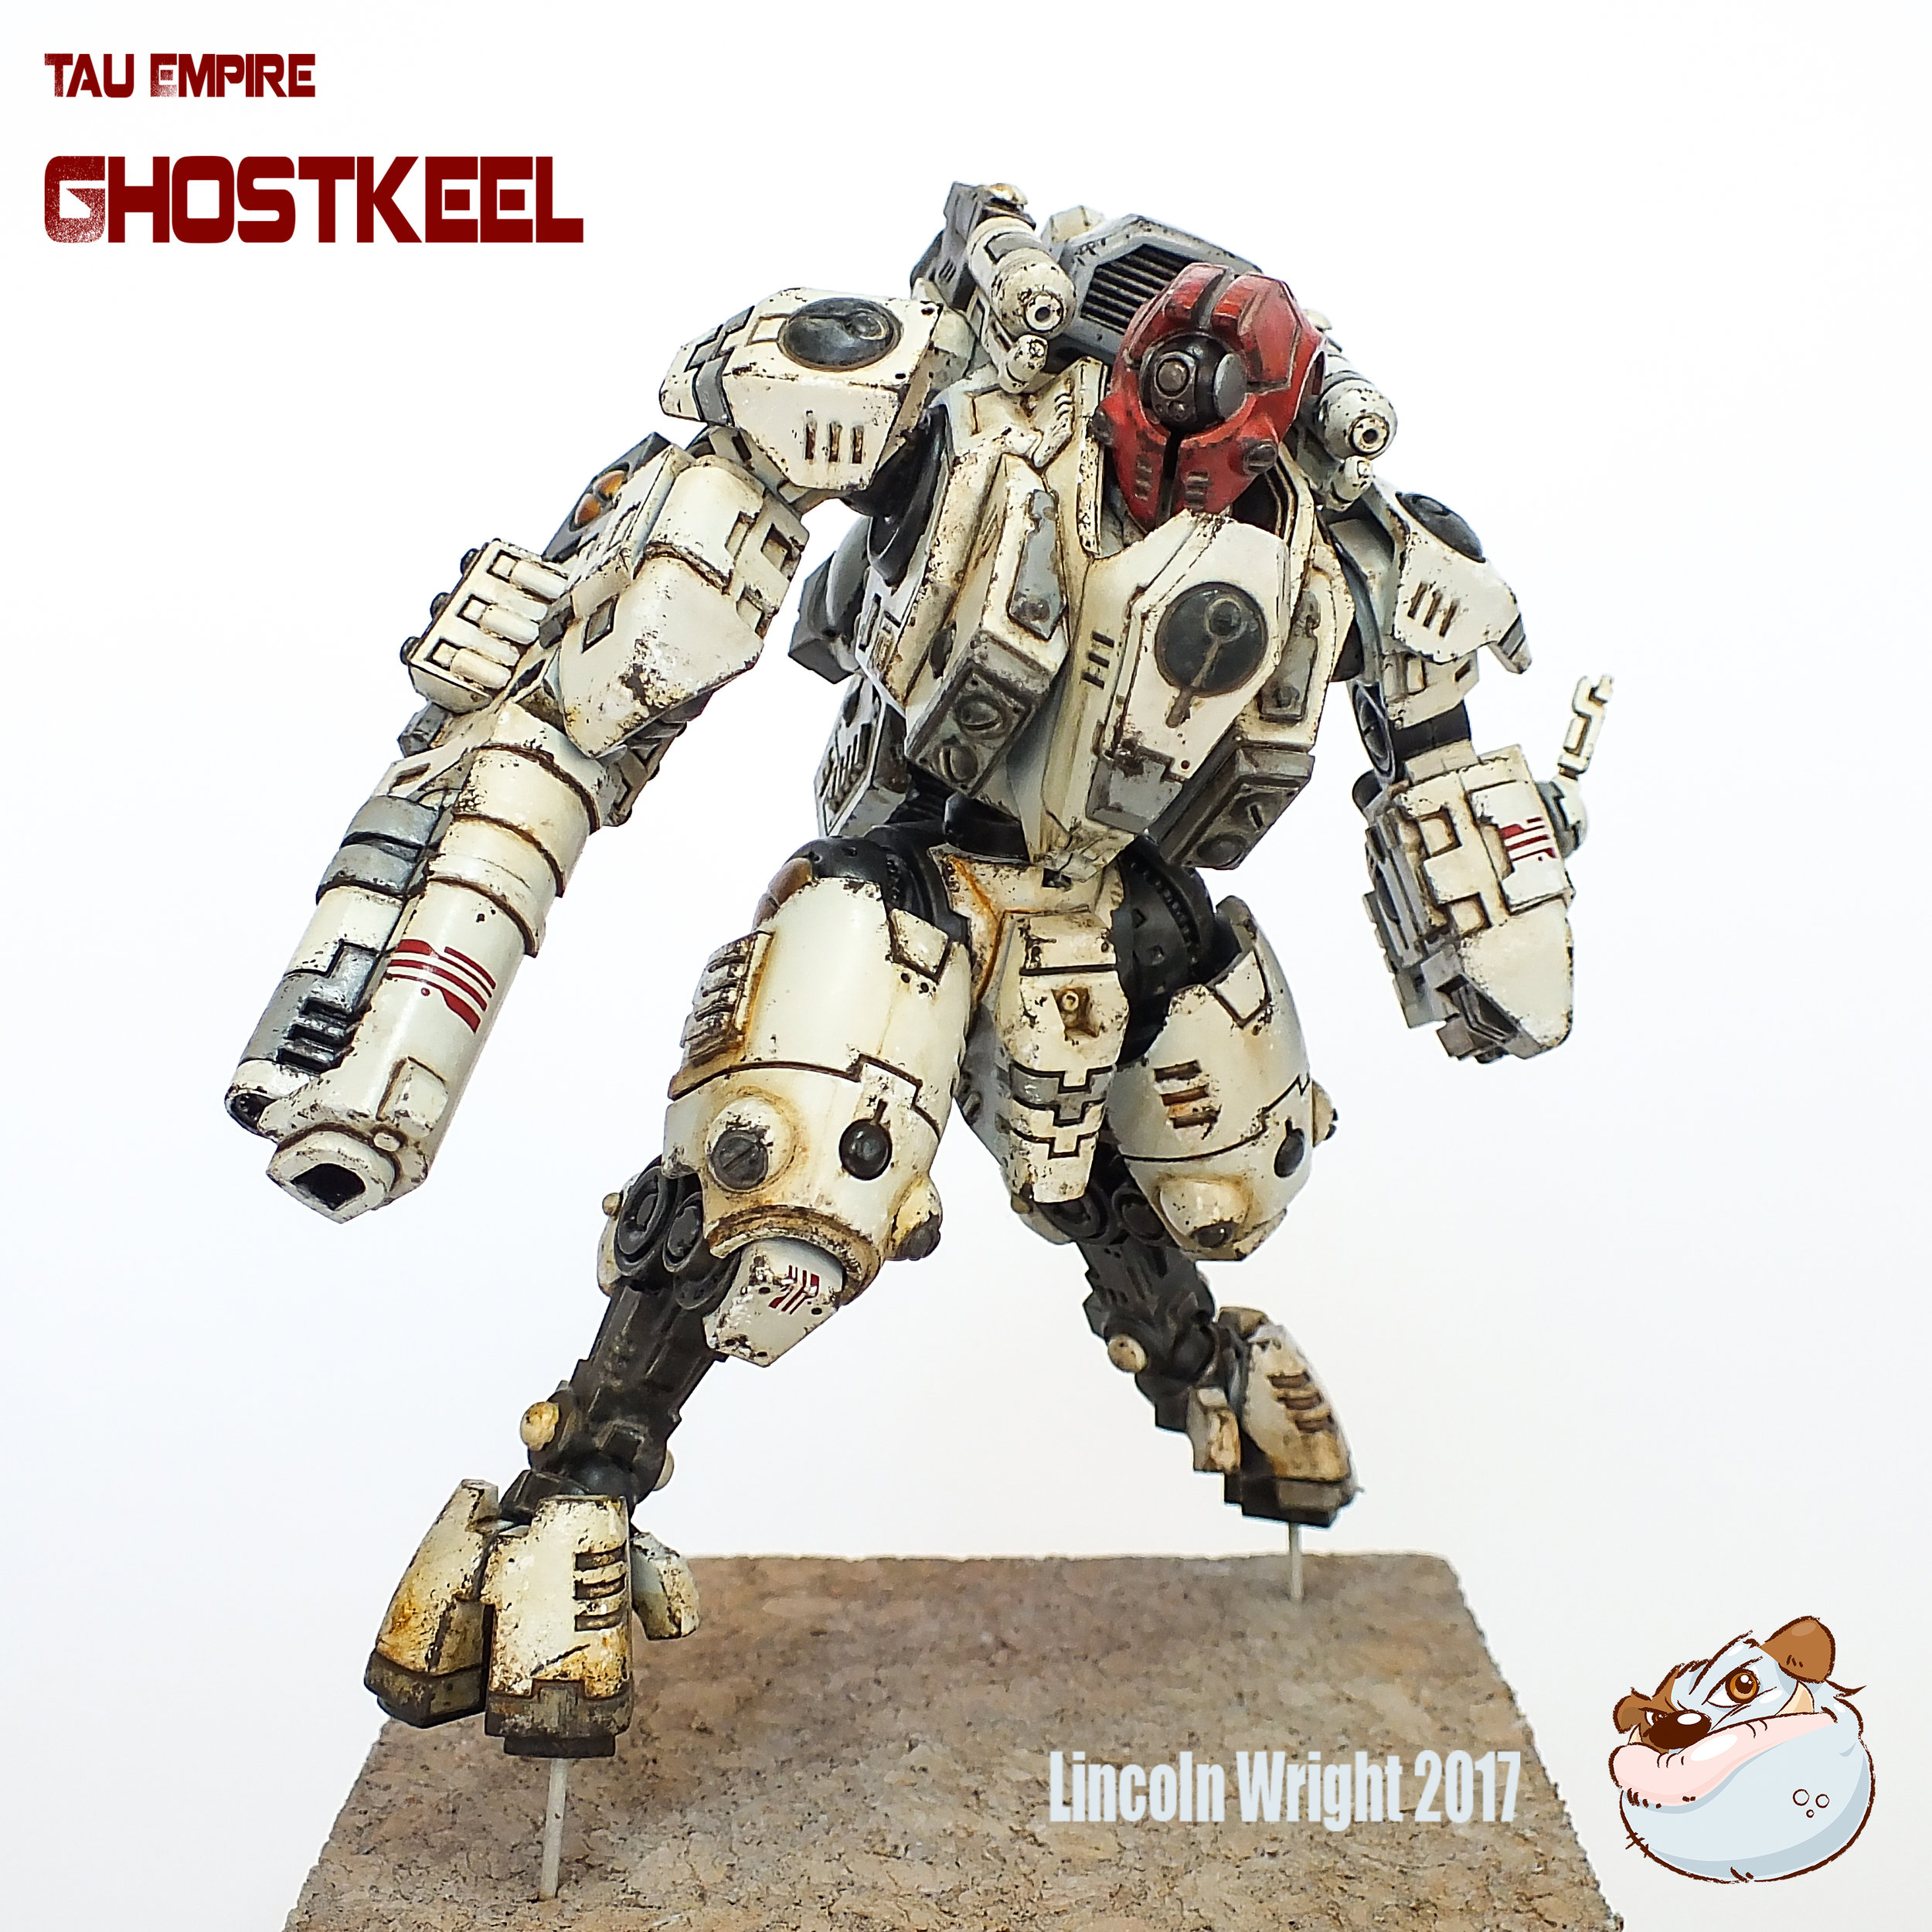 Ghostkeel_Lincoln Wright-1.jpg